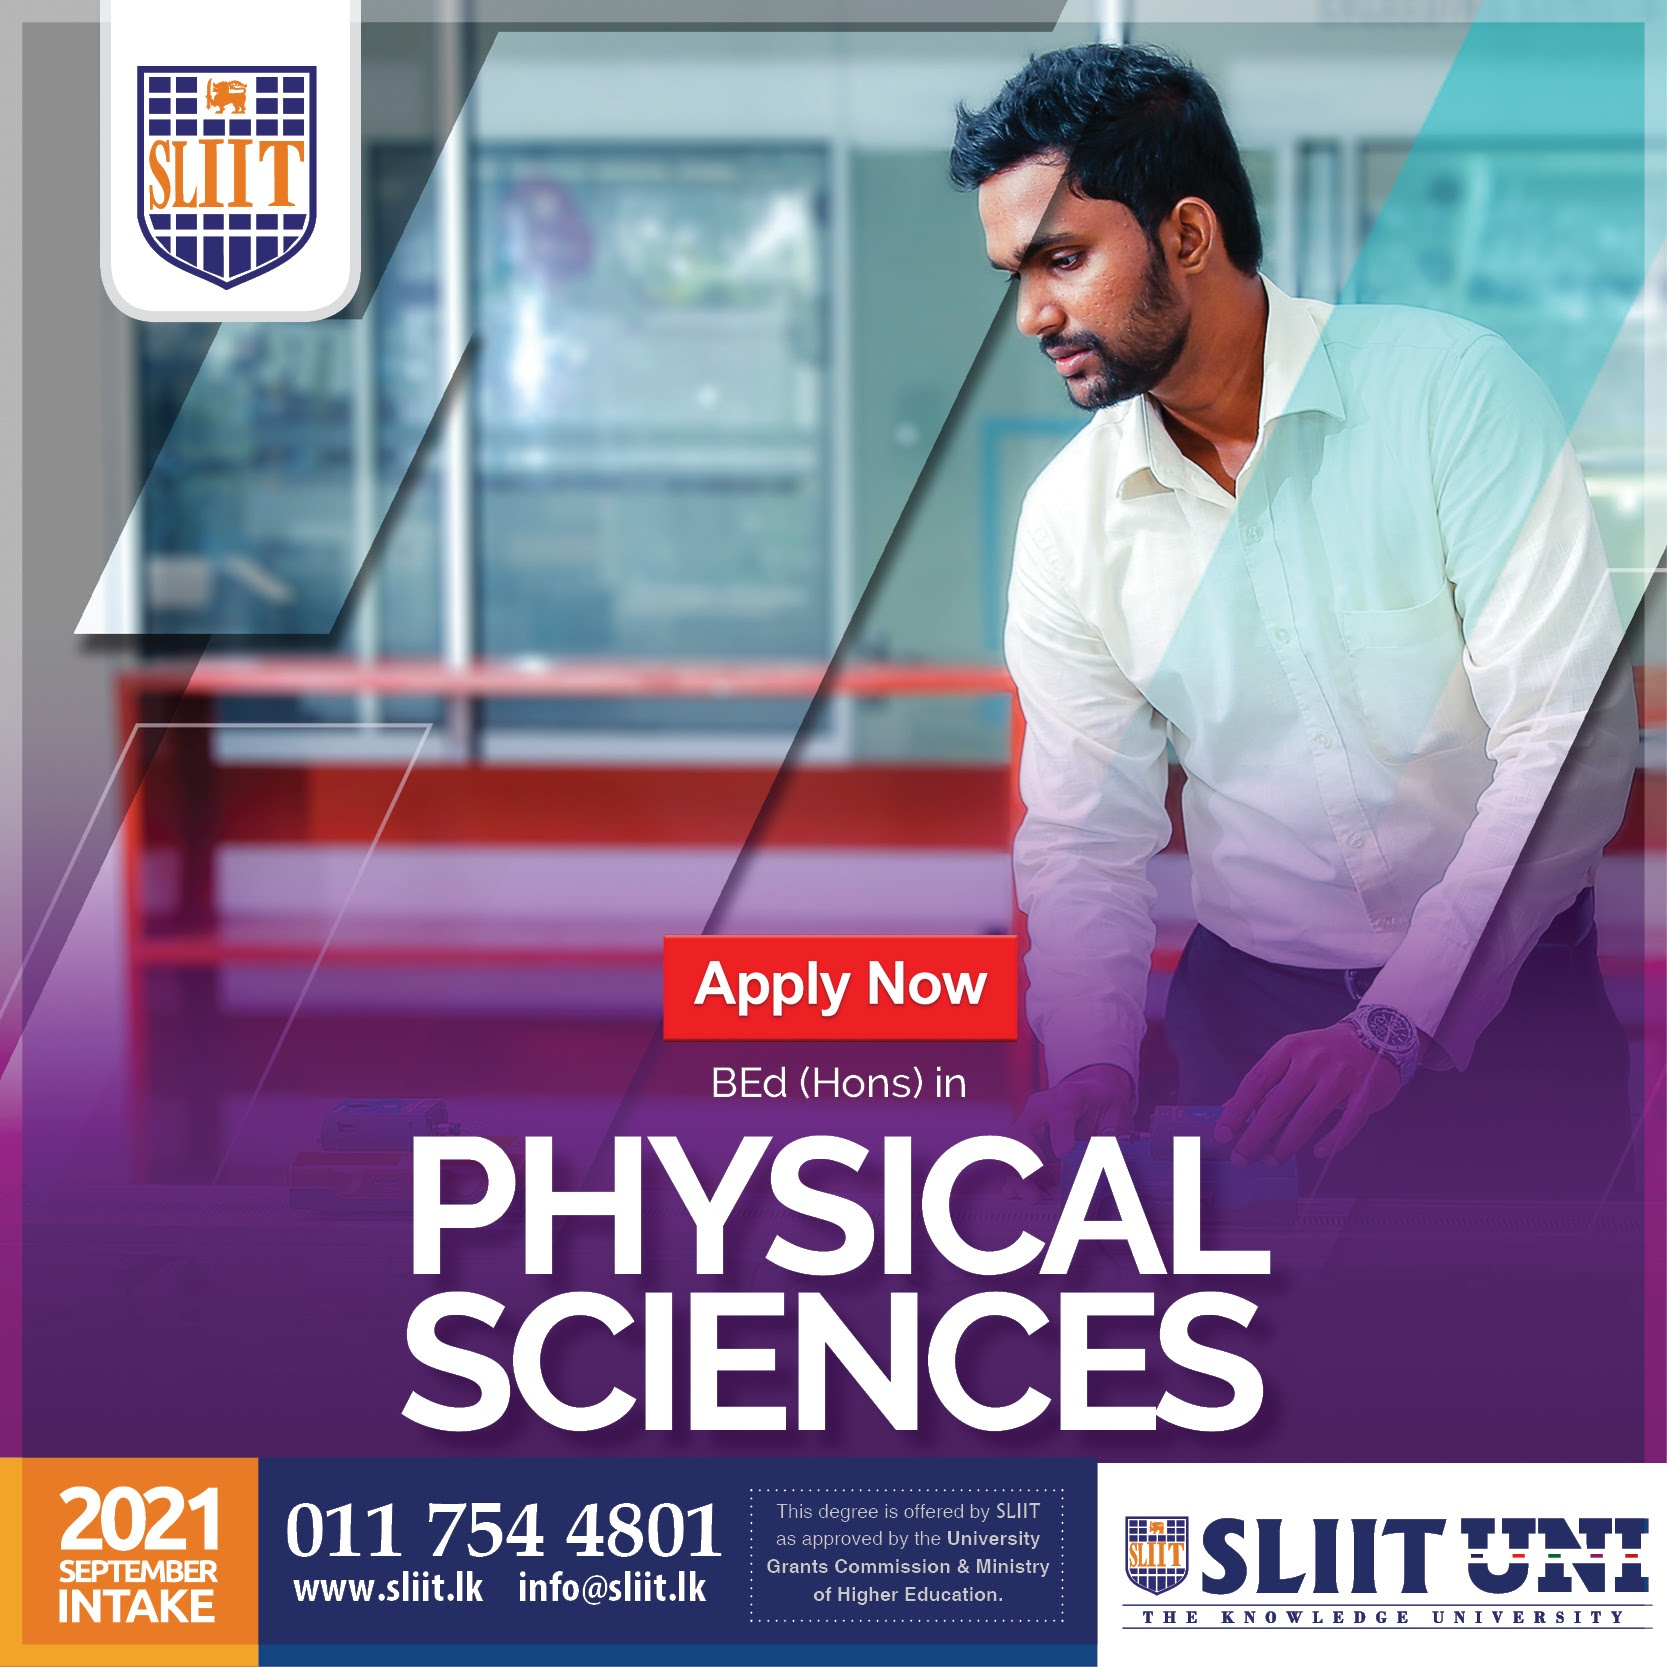 BEd (Hons) Physical Sciences Degree at SLIIT